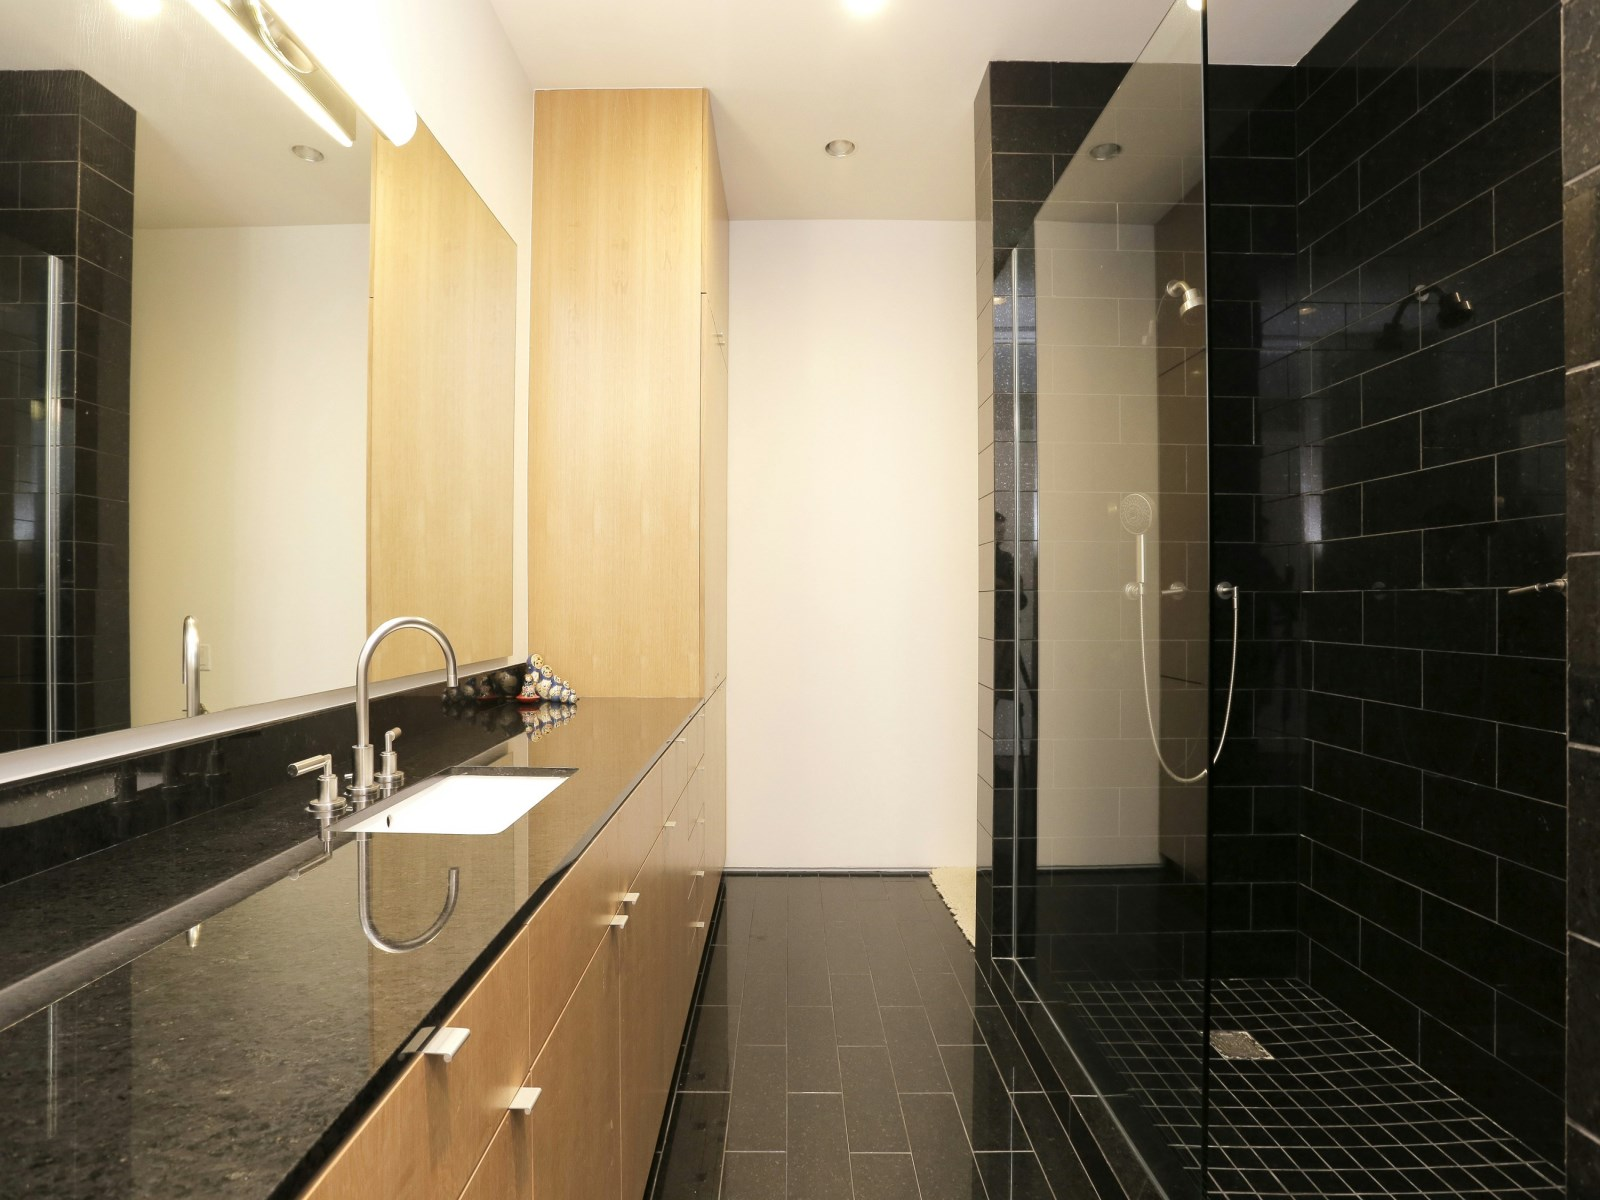 Modern Granite Bathroom - A home with formidable architecture and a light interior